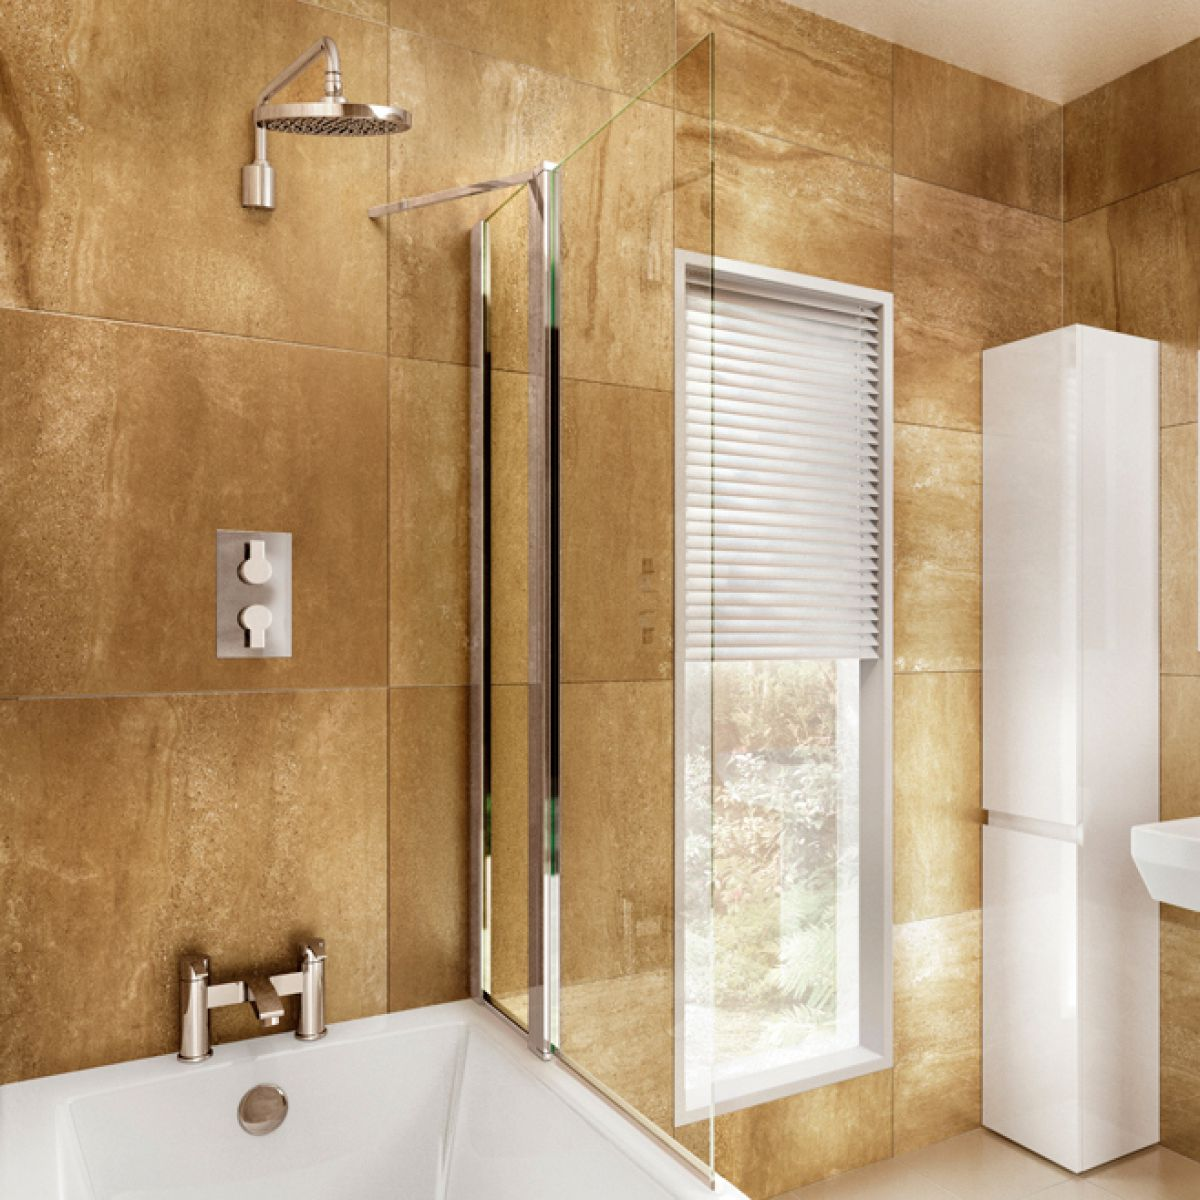 Image Of Baths With Shower Screen Bath shower screens our pick of ...